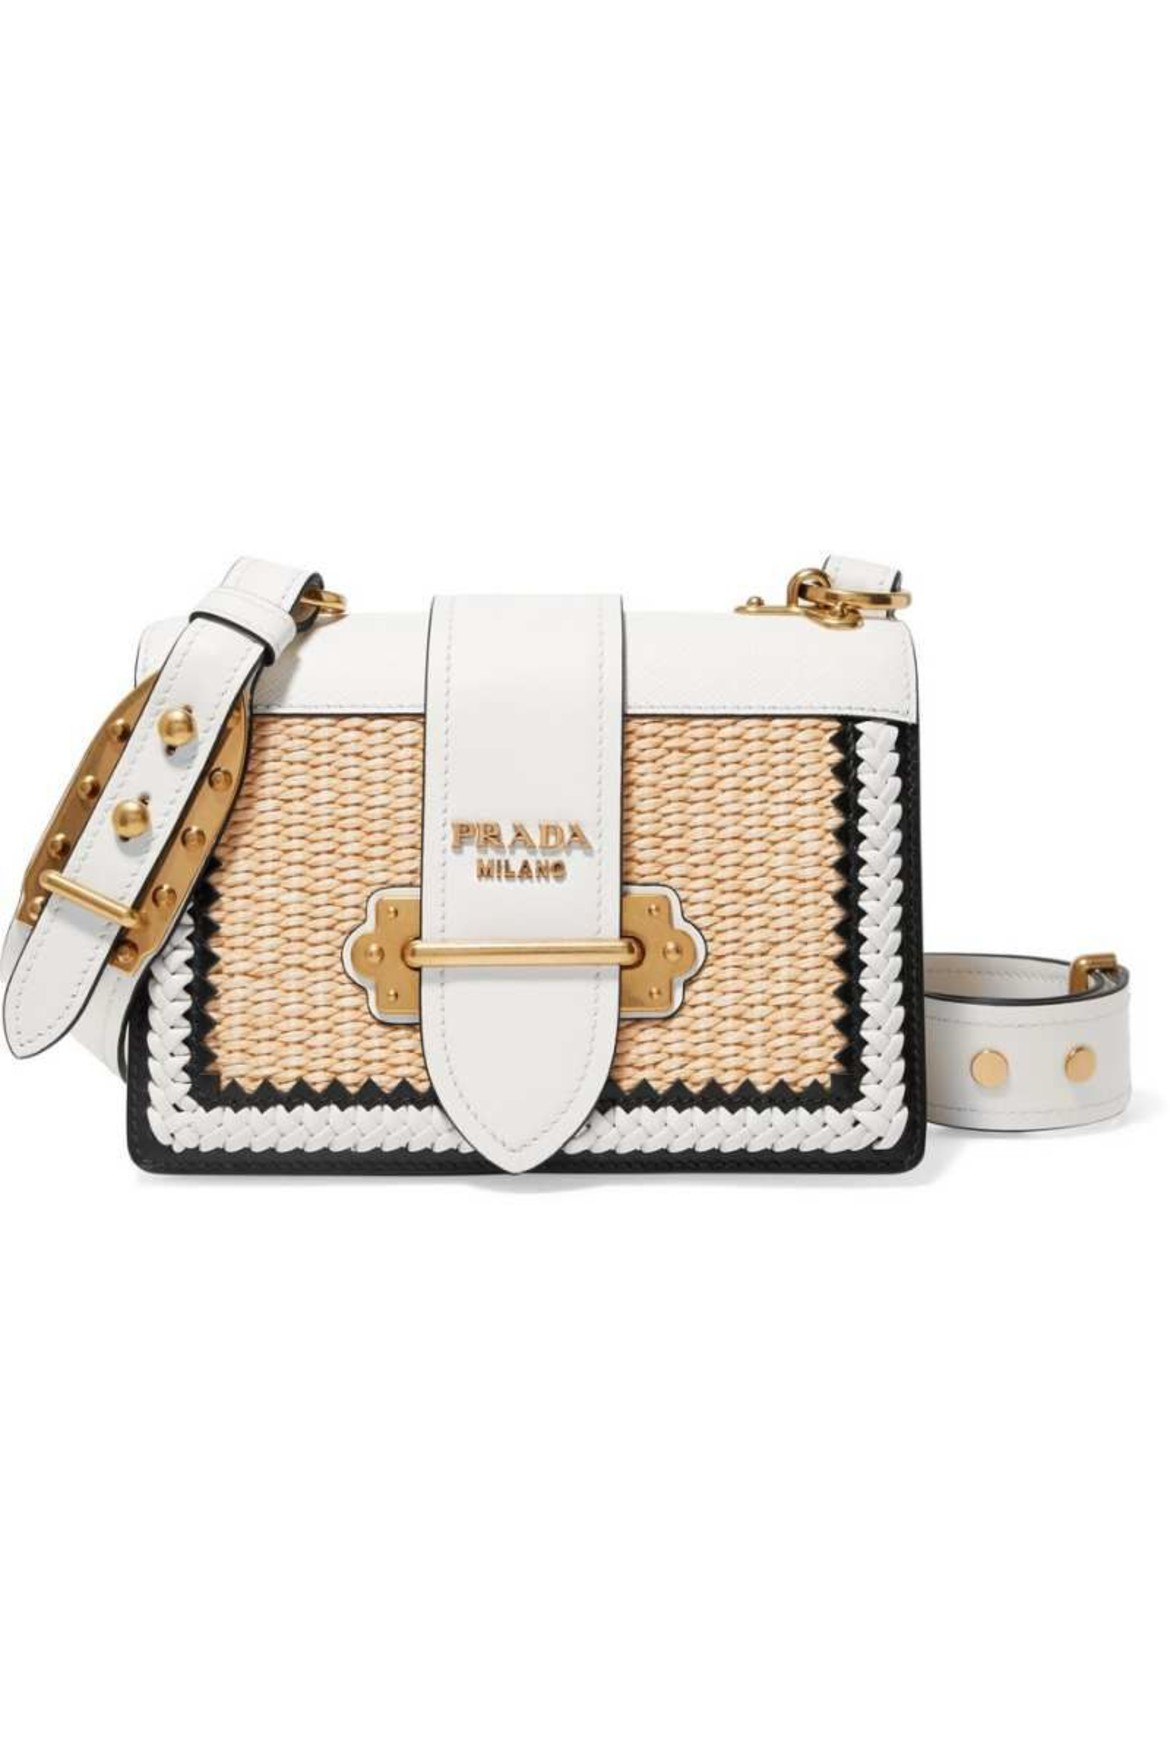 PRADA Cahier whipstitched leather and raffia shoulder bad